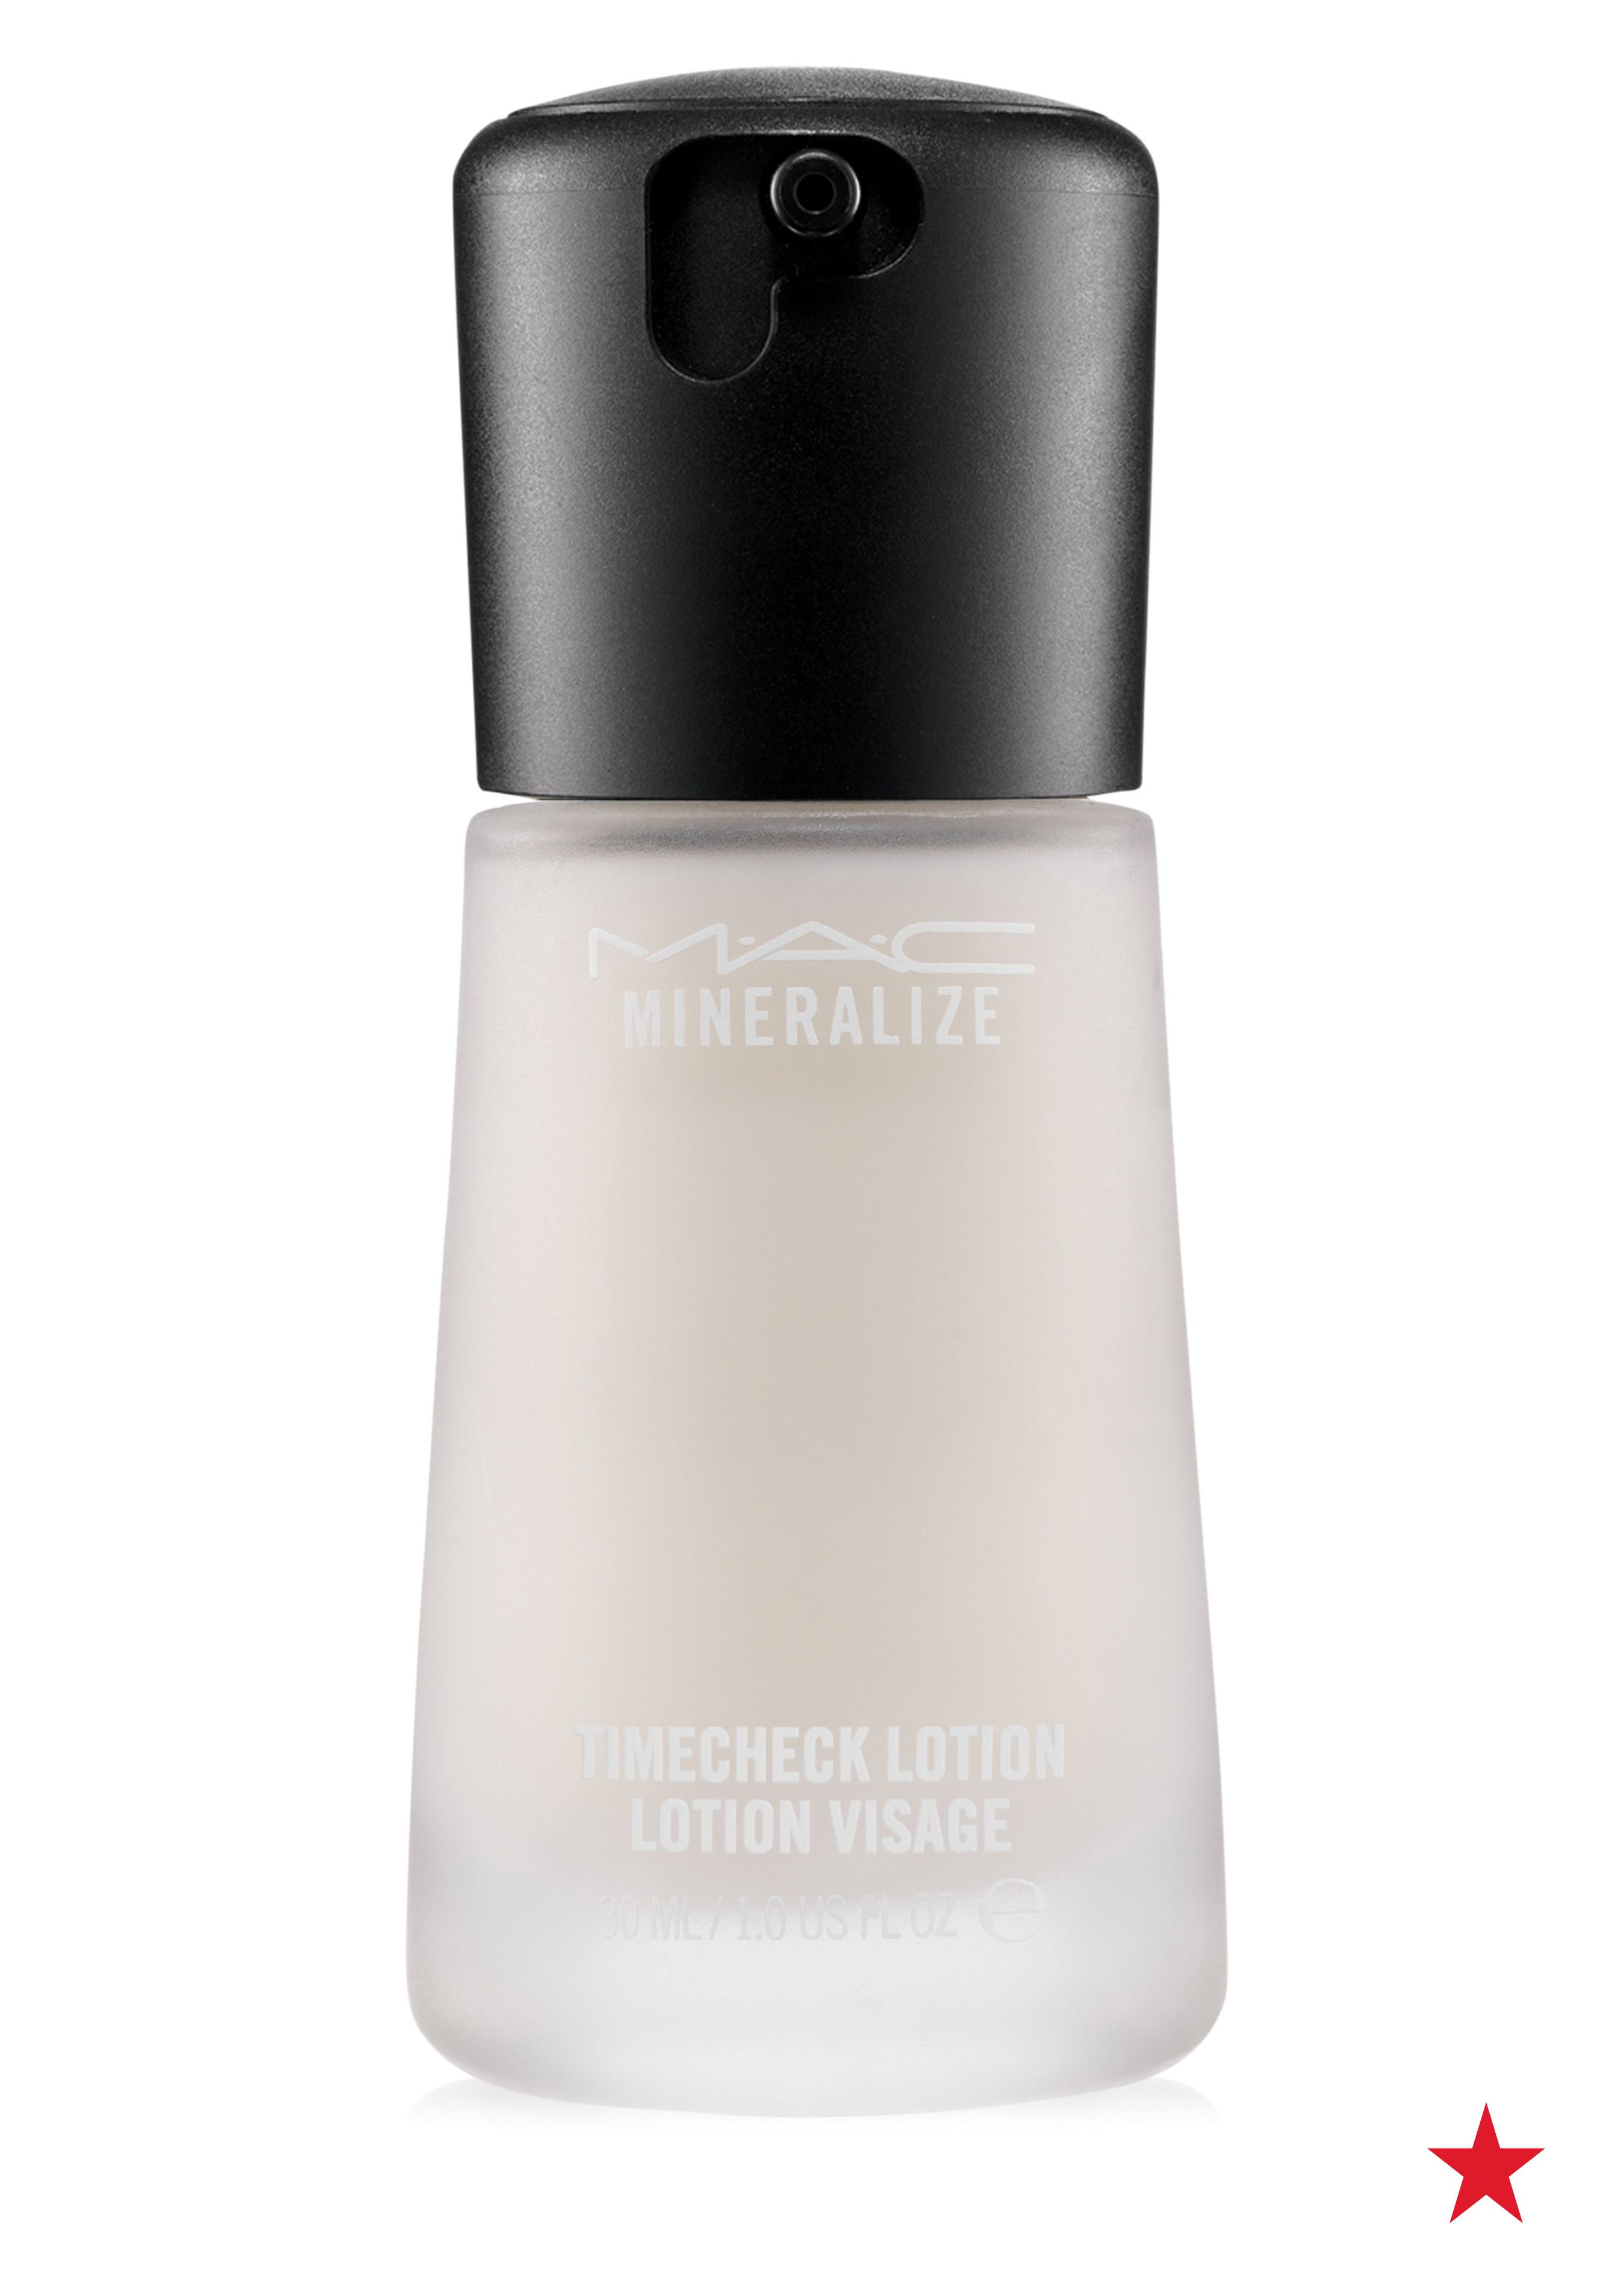 Mineralize Timecheck Lotion Makeup, Blusher makeup, How